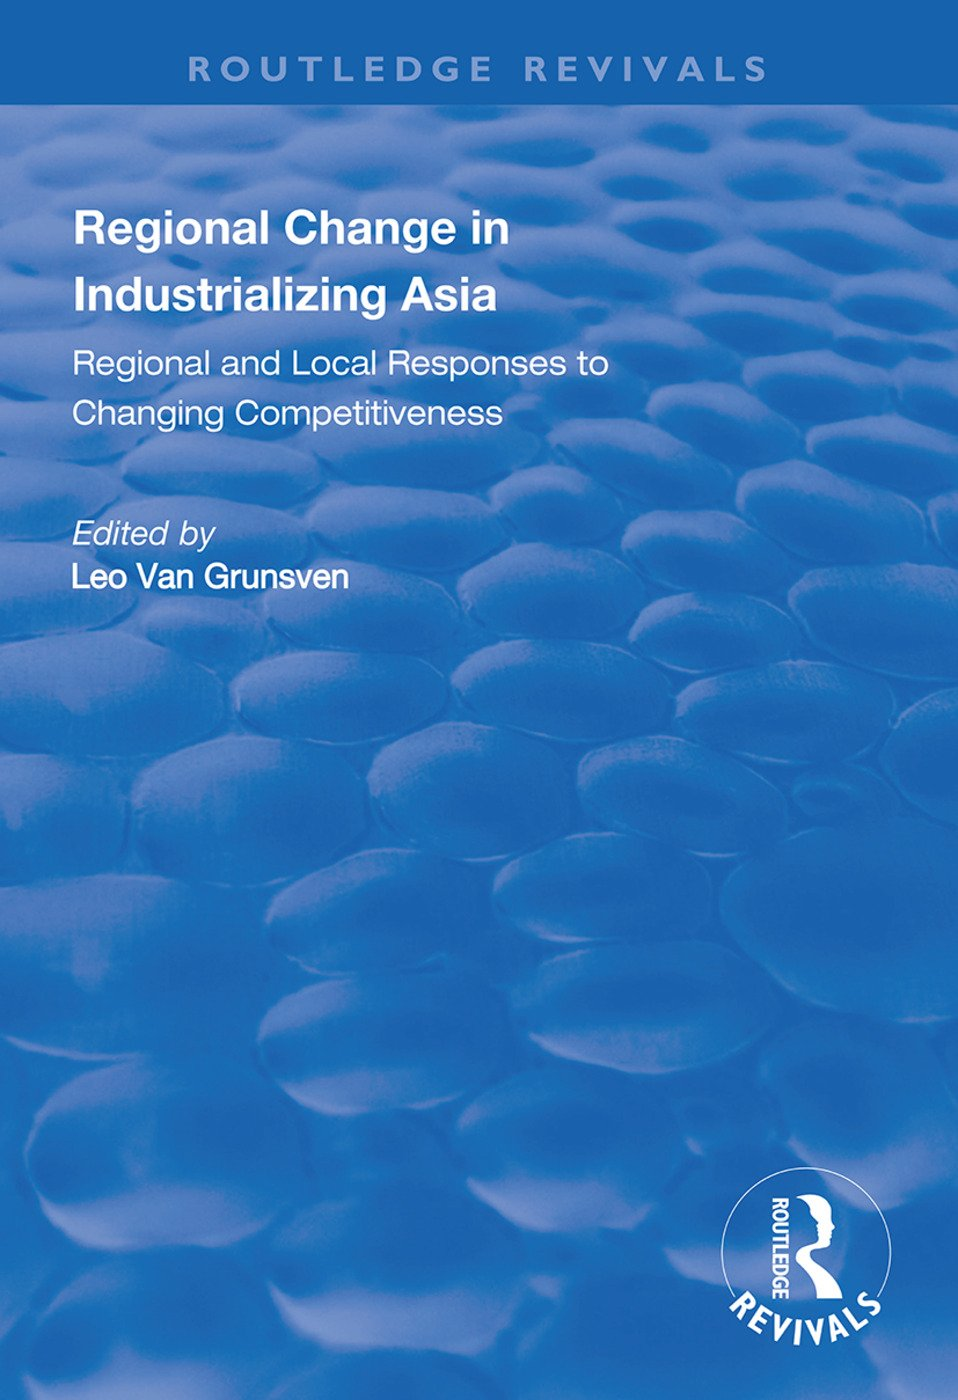 Regional Change in Industrializing Asia: Regional and Local Responses to Changing Competitiveness book cover